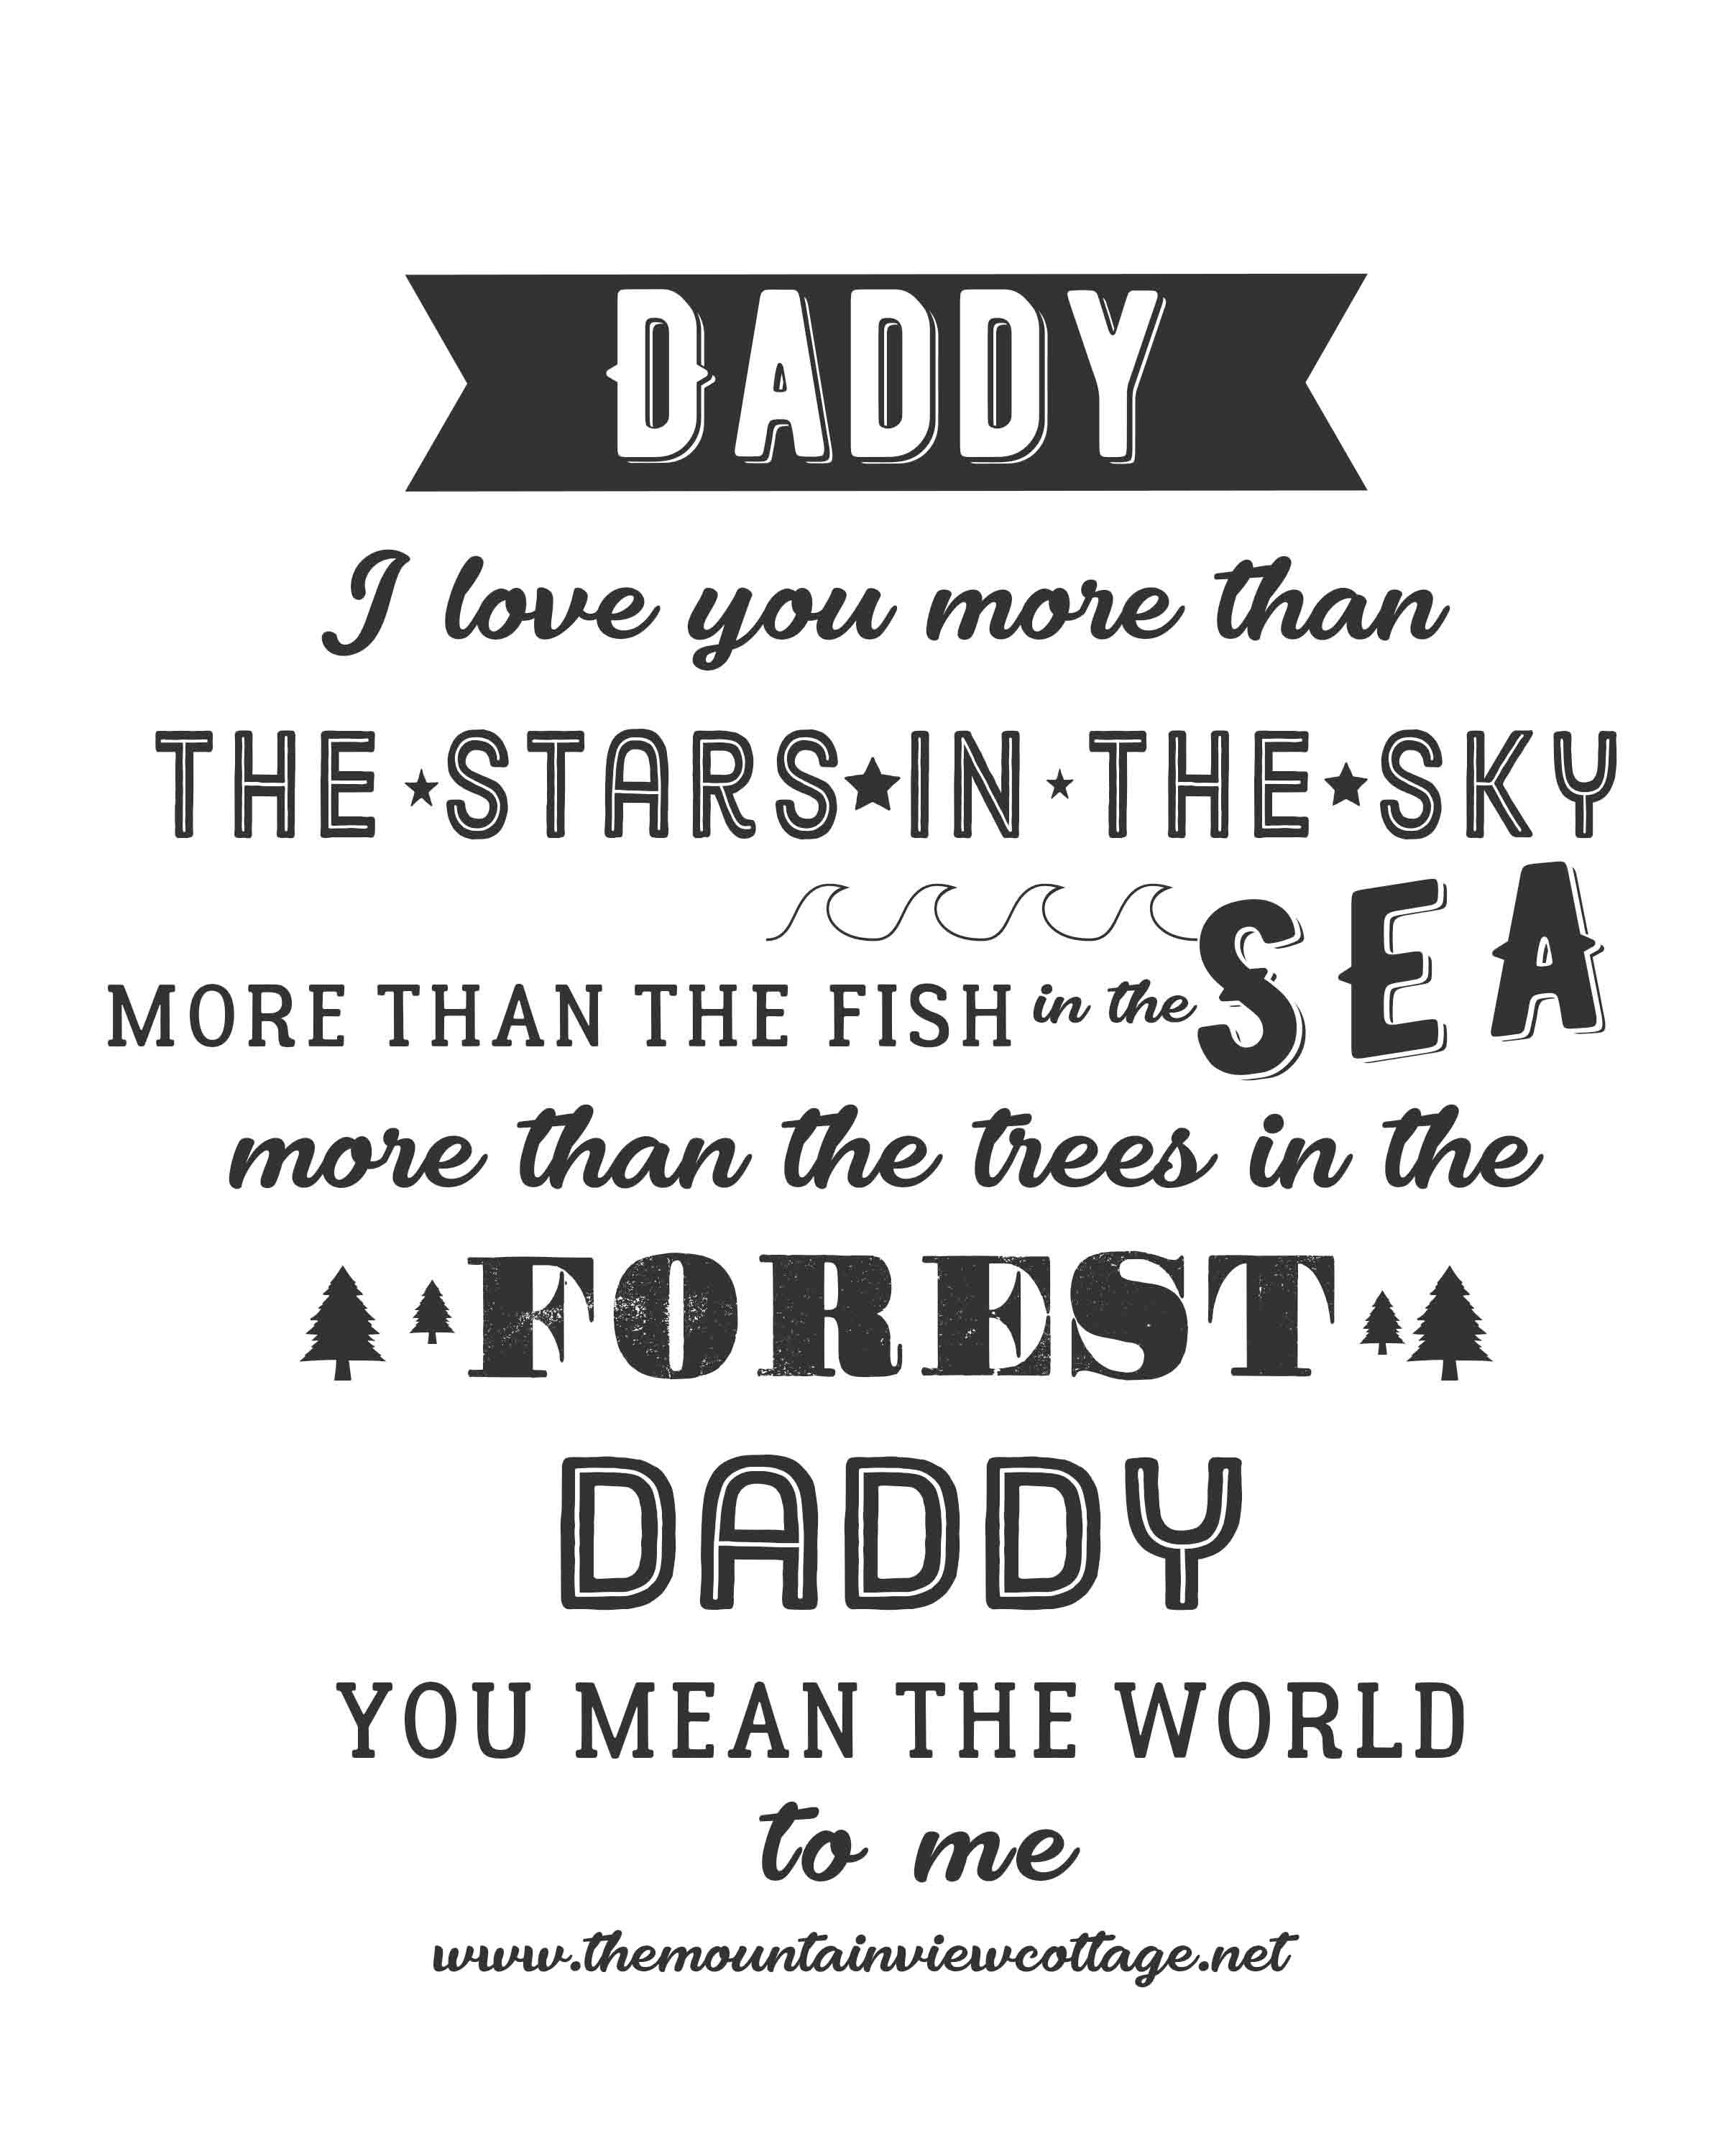 Dad Quotes-I love you dad quotes-Daddy I love you more than the stars in the sky more than the fish in the sea more than the trees in the forest daddy you mean the world to me